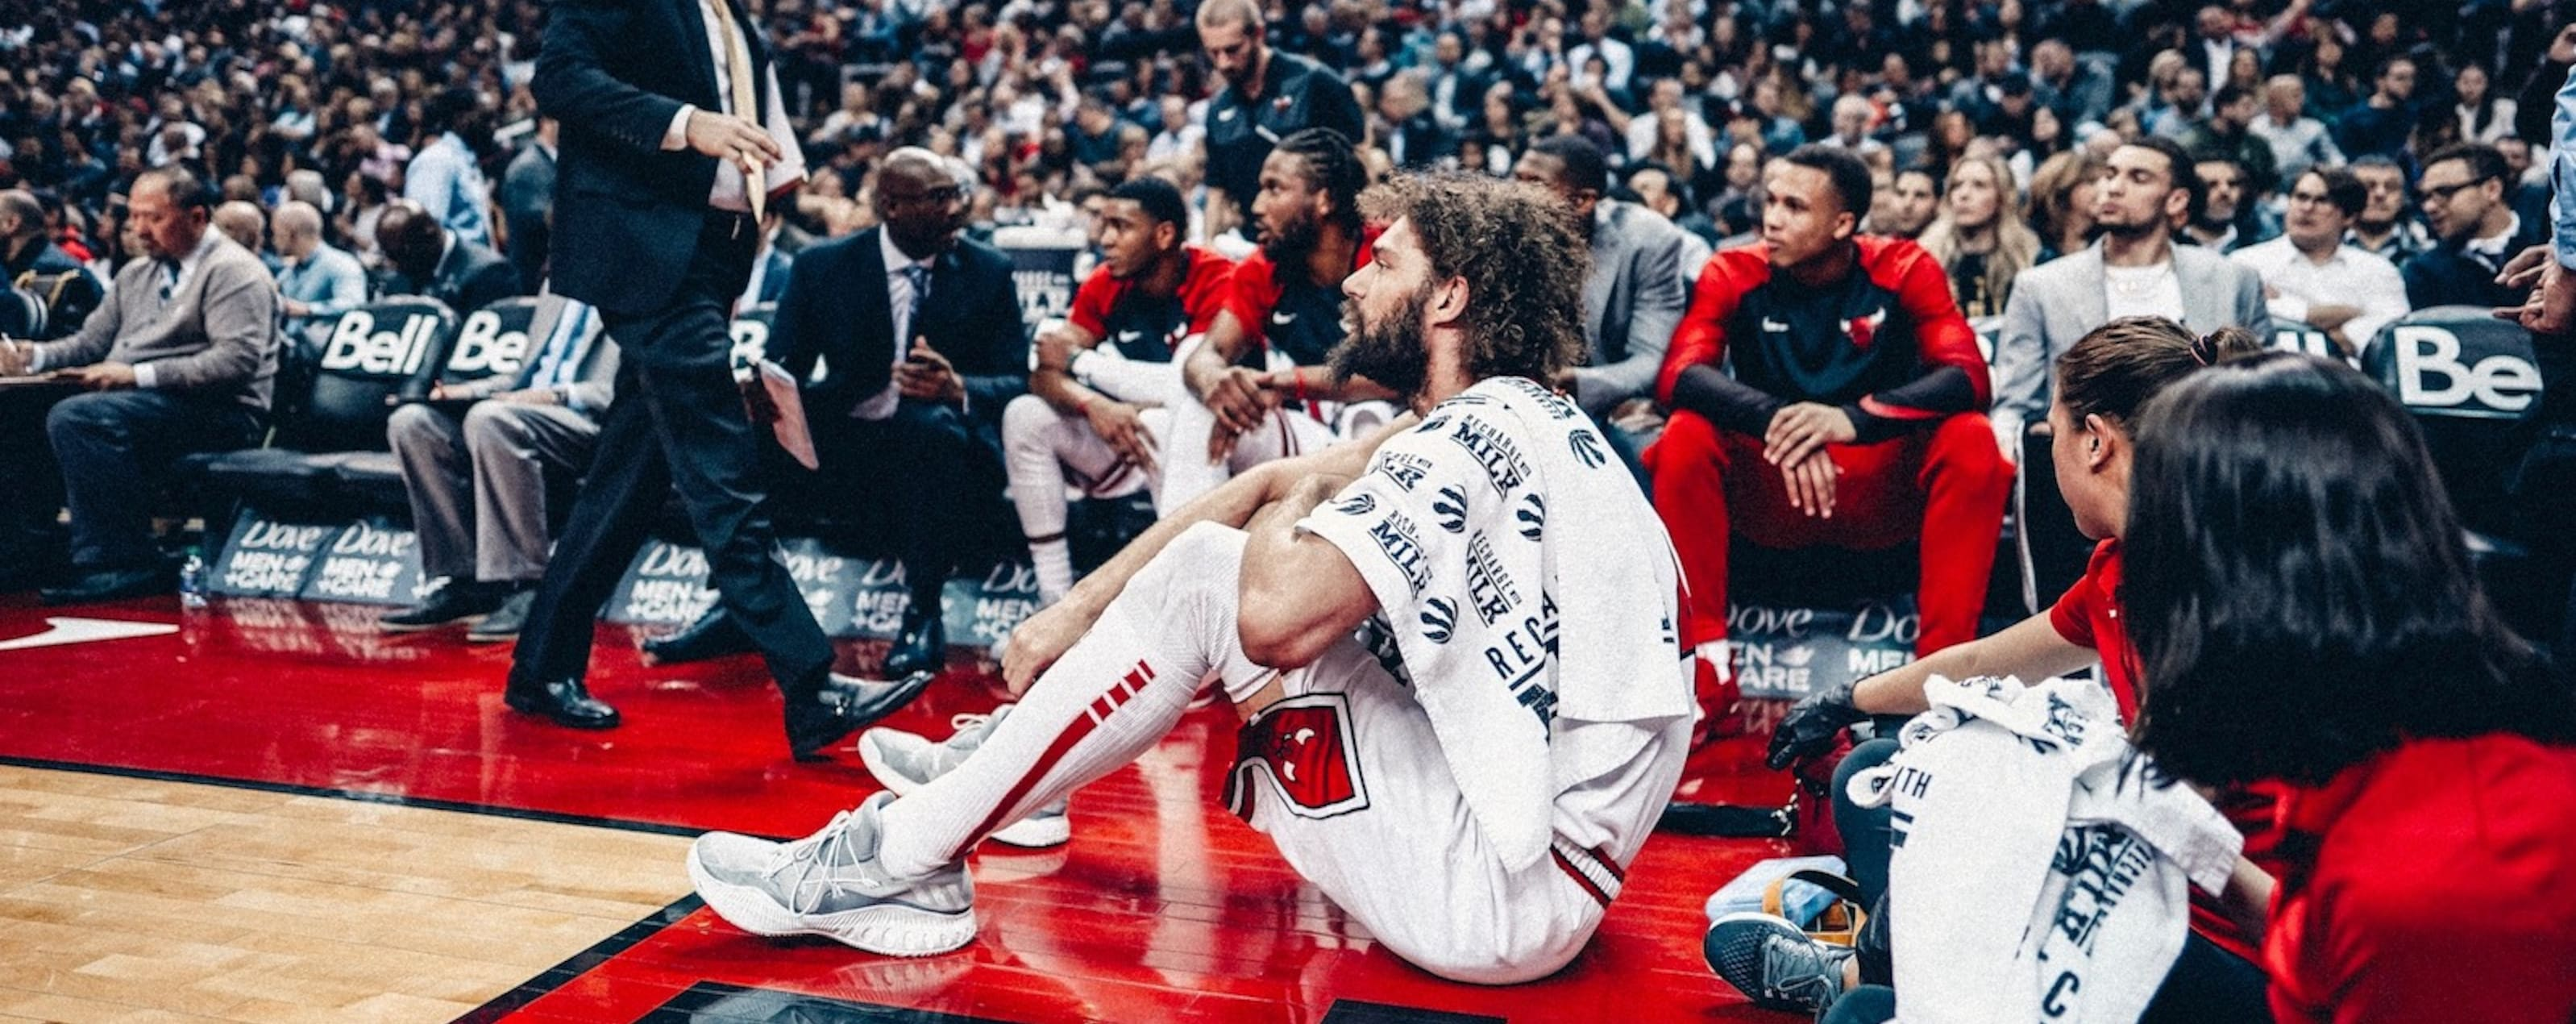 Lopez Sits on the Floor in Toronto